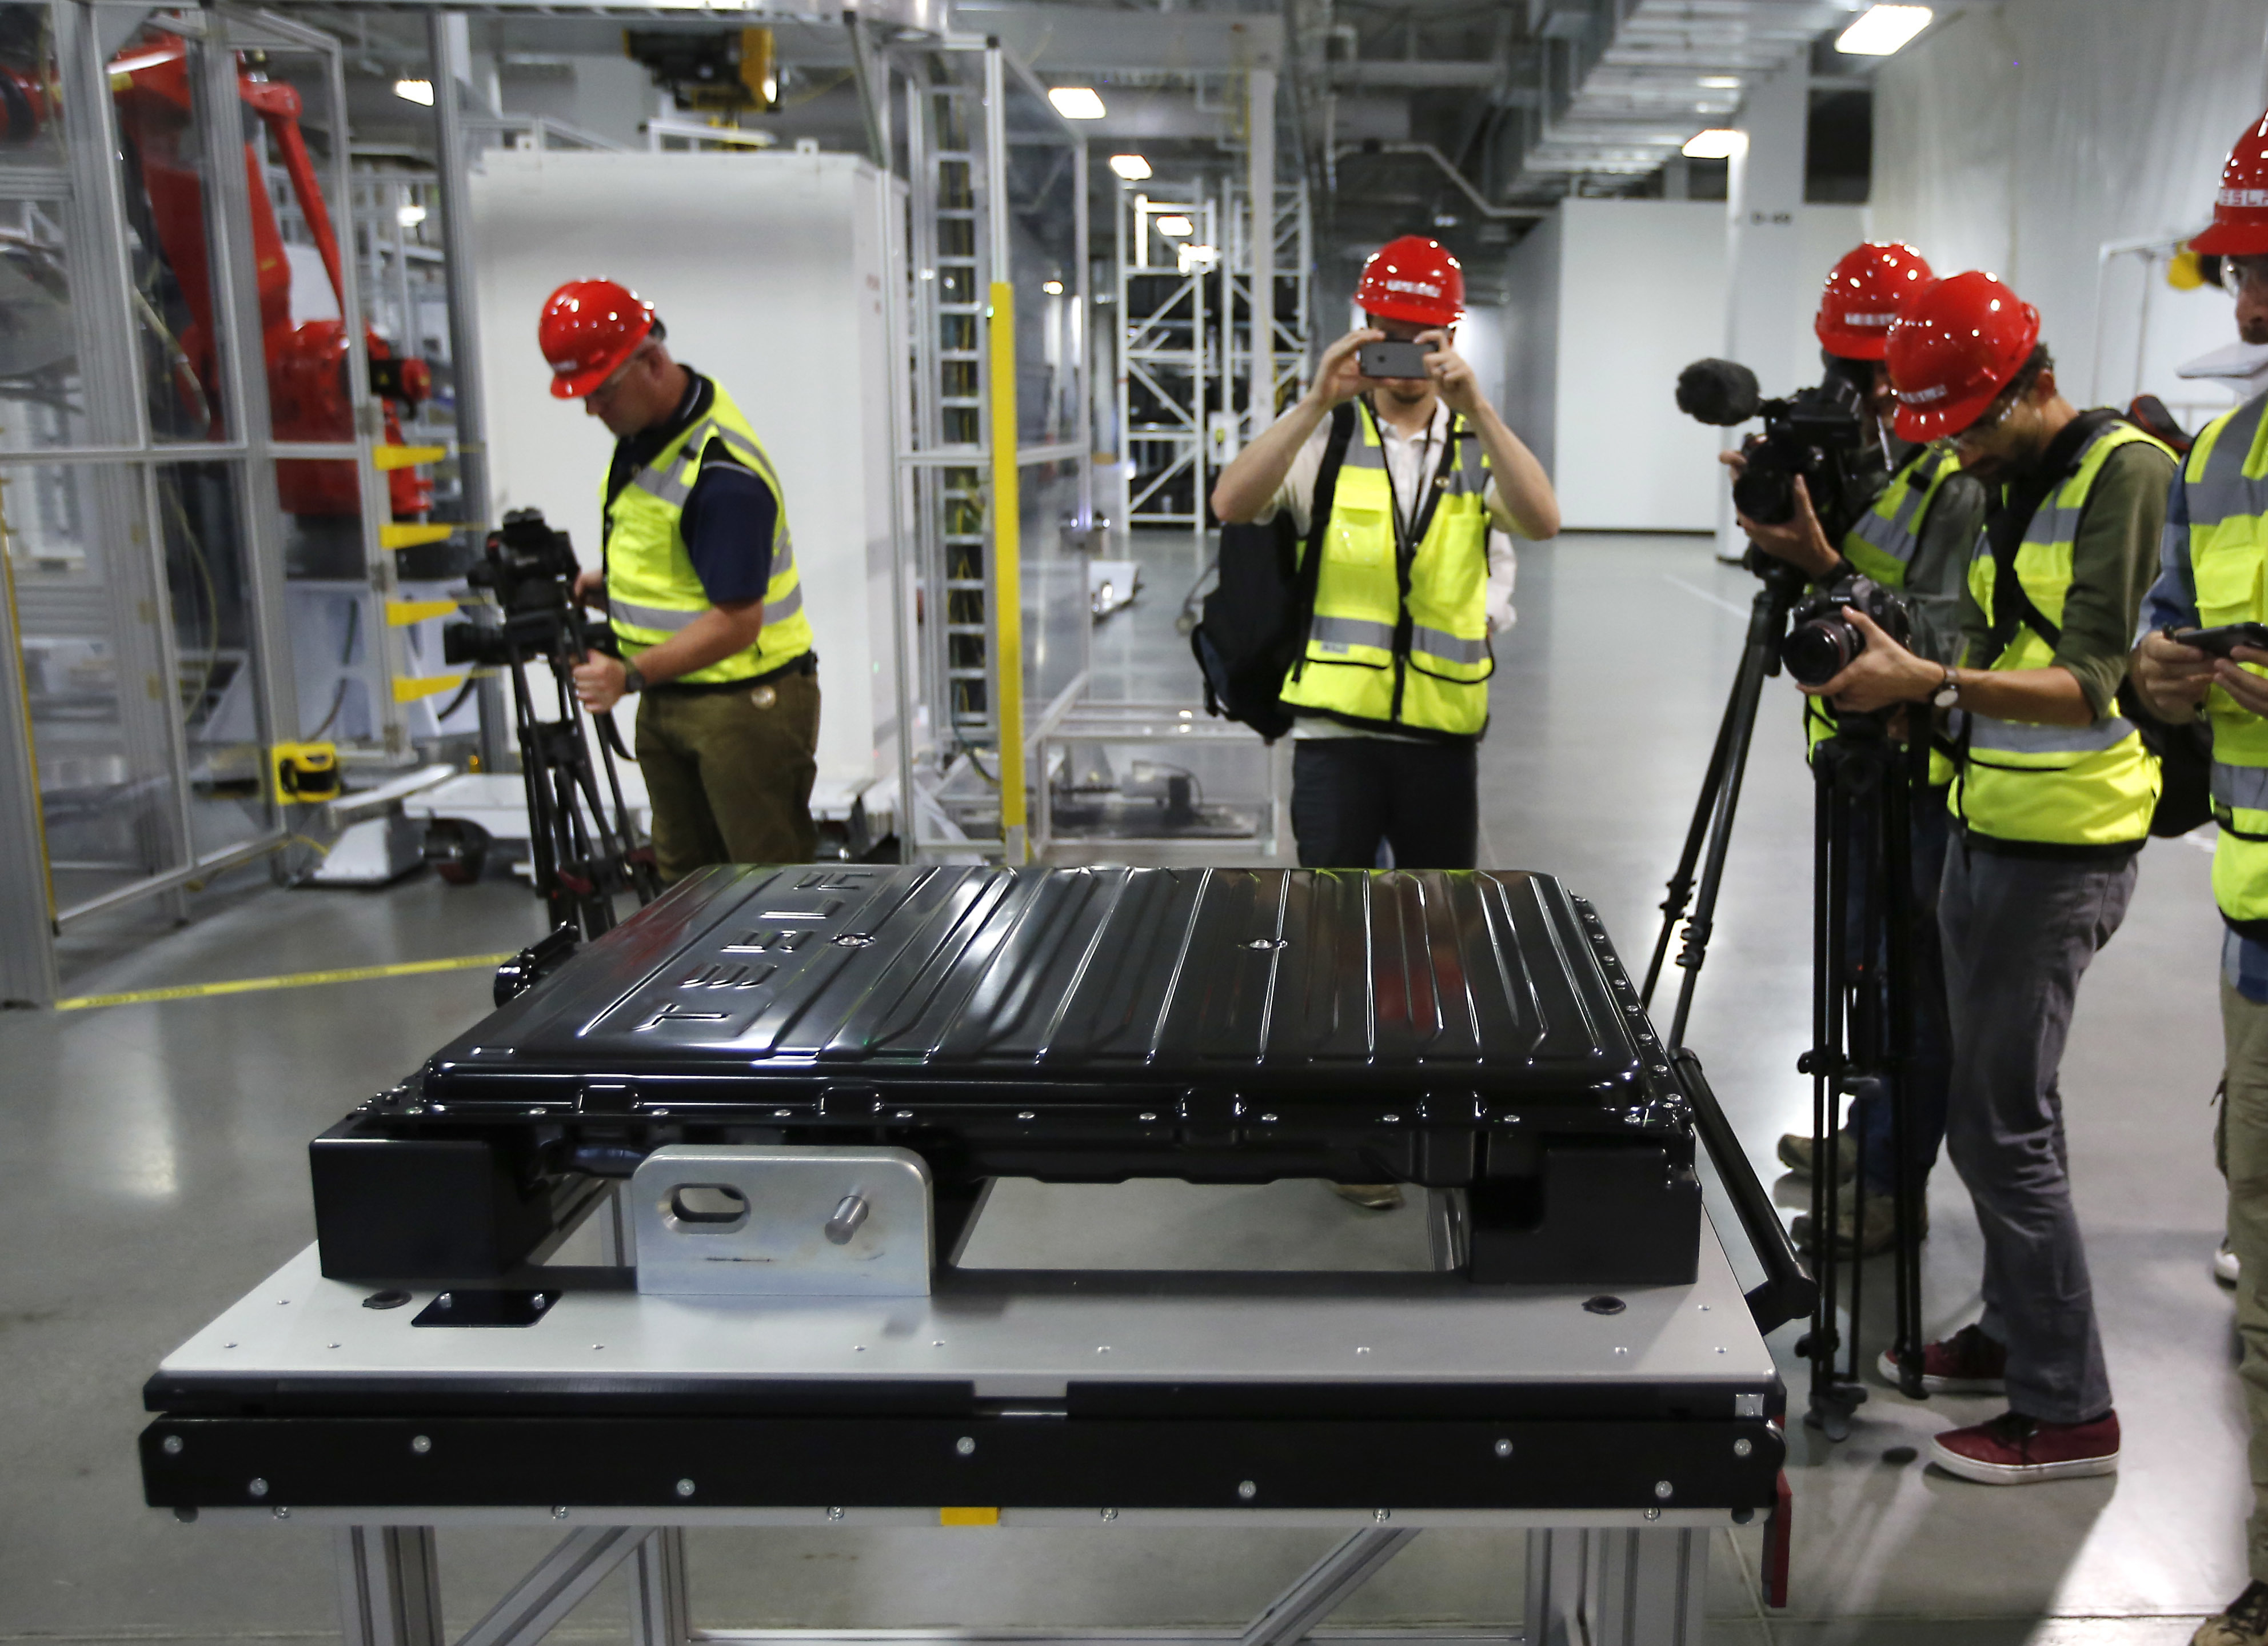 A Tesla battery pack is displayed during a media tour of the new Tesla Motors Inc., Gigafactory Tuesday, July 26, 2016, in Sparks, Nev. It's Tesla Motors biggest bet yet: a massive, $5 billion factory in the Nevada desert that could almost double the world's production of lithium-ion batteries by 2018. (AP Photo/Rich Pedroncelli)